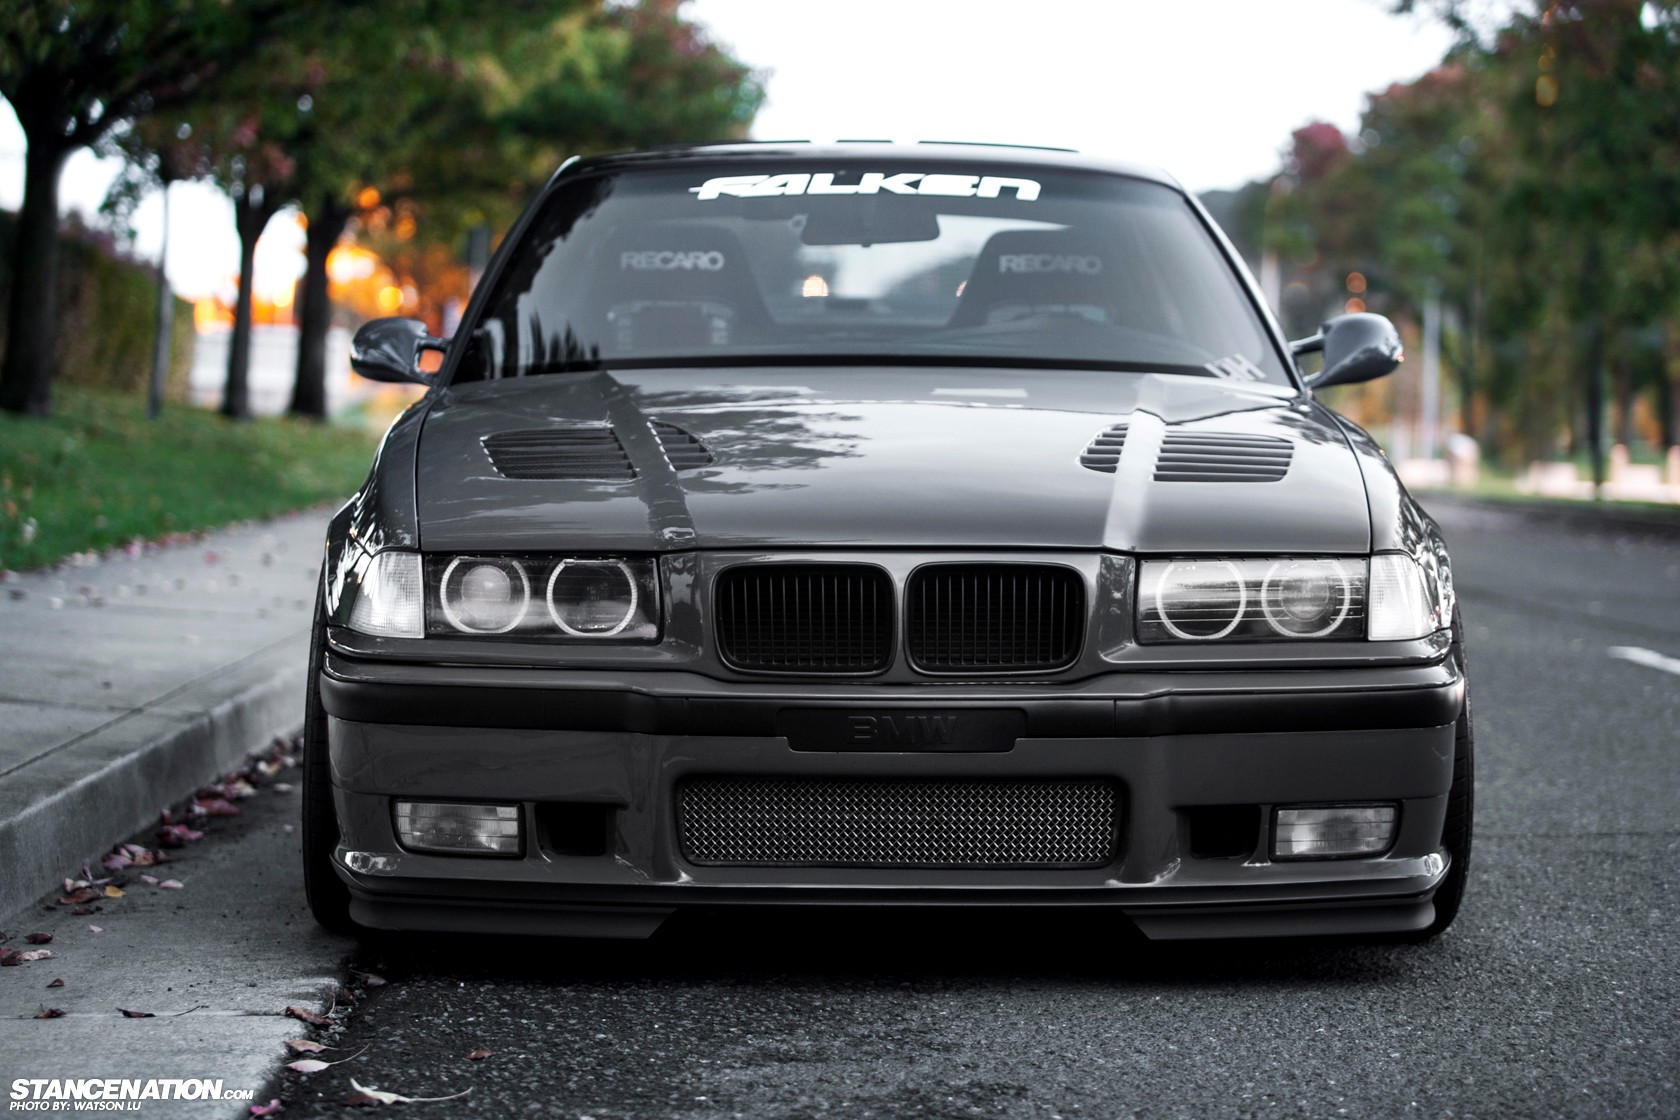 download Bmw E36 Wallpapers HD Download [1680x1120] for your 1680x1120